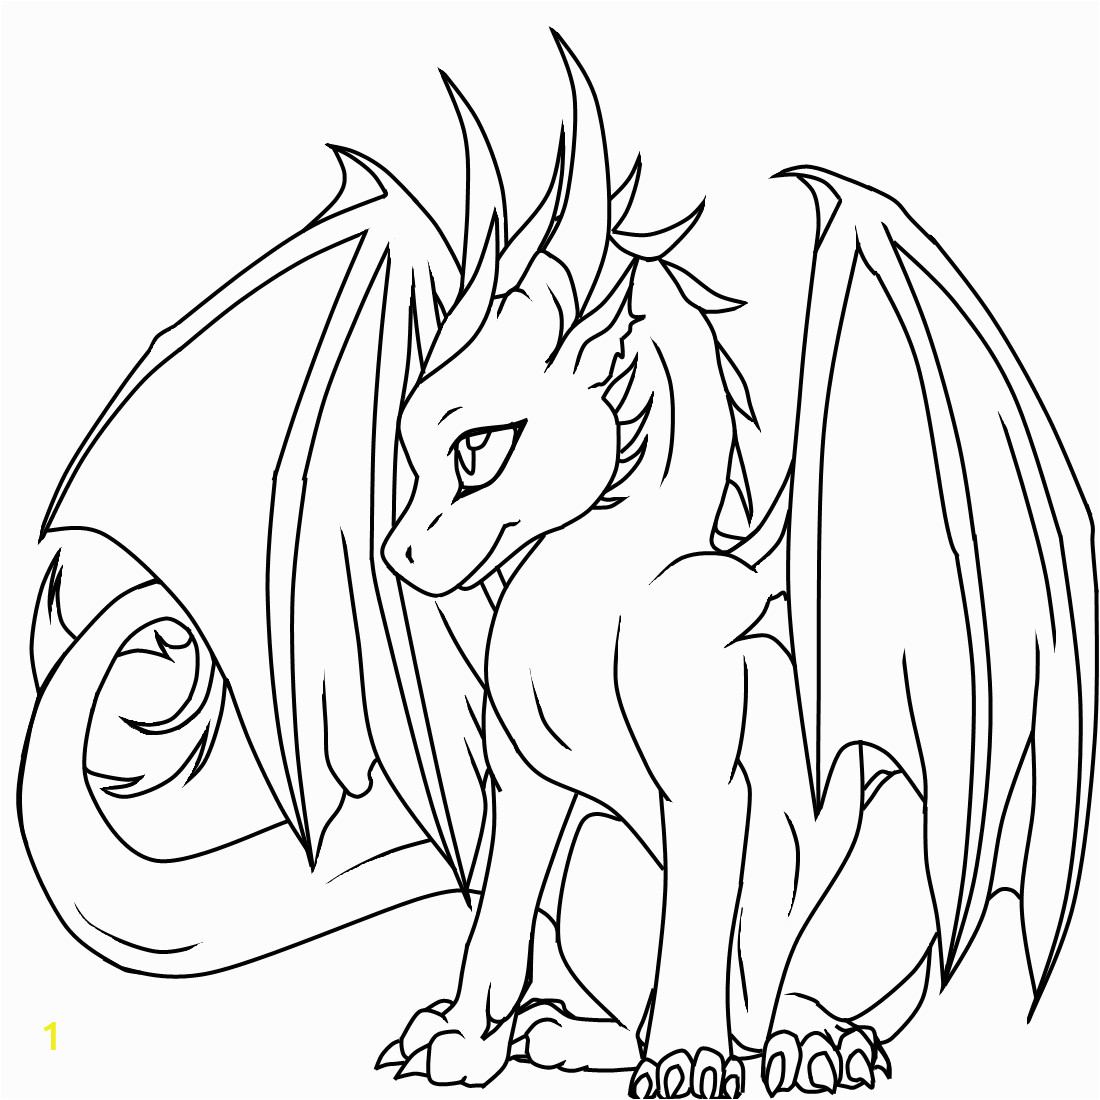 1fe3dceb1b61fbeabd0fb ae1bcd 28 collection of really cool dragons coloring pages high 1100 1100